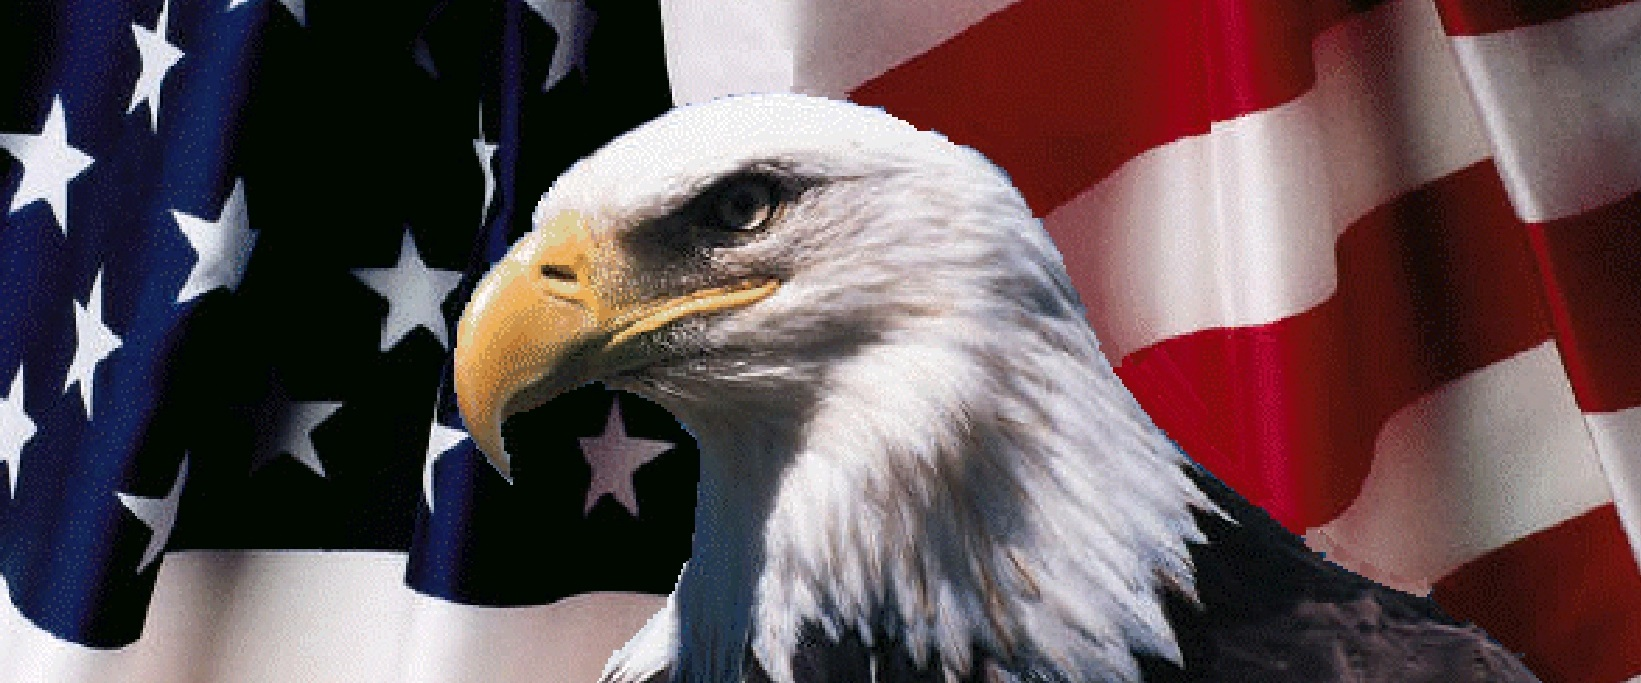 american-flag-and-eagle-2a